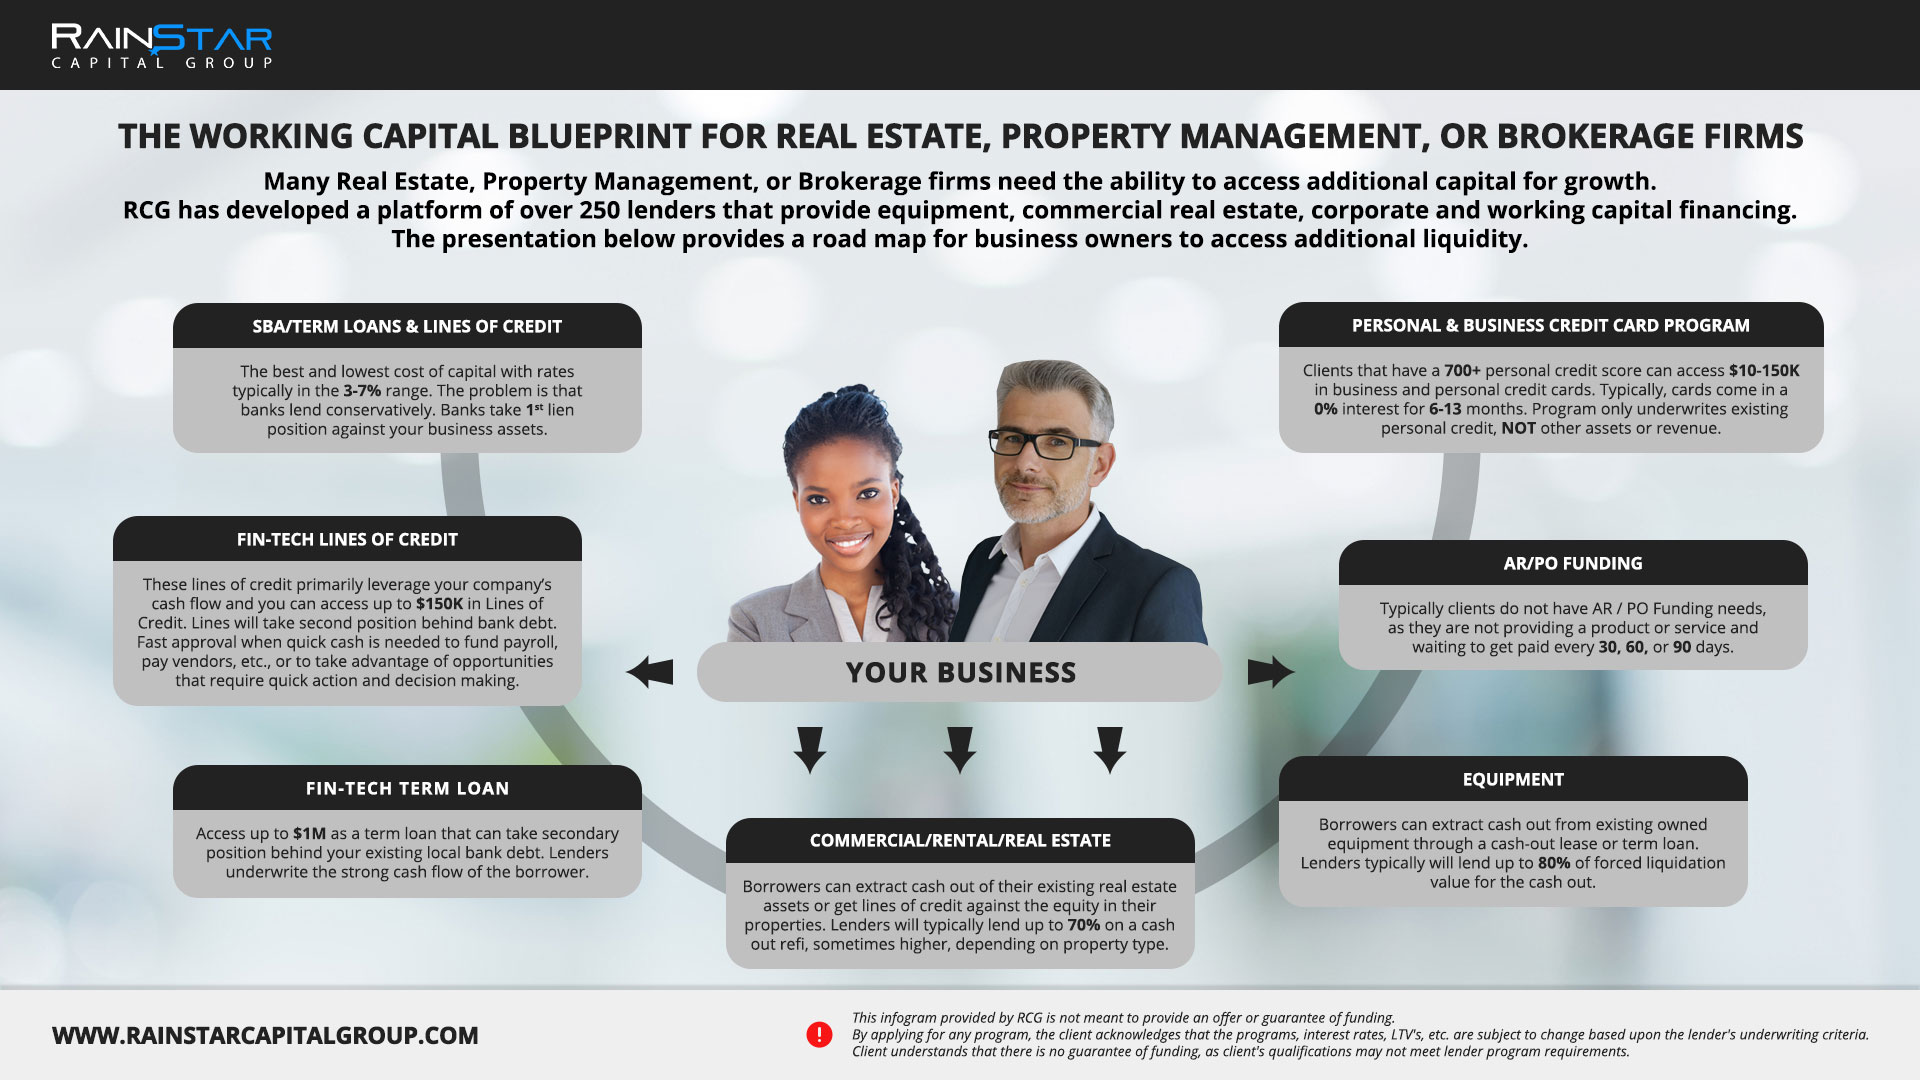 Real Estate, Property Management, or Brokerage Firms - Click to Enlarge